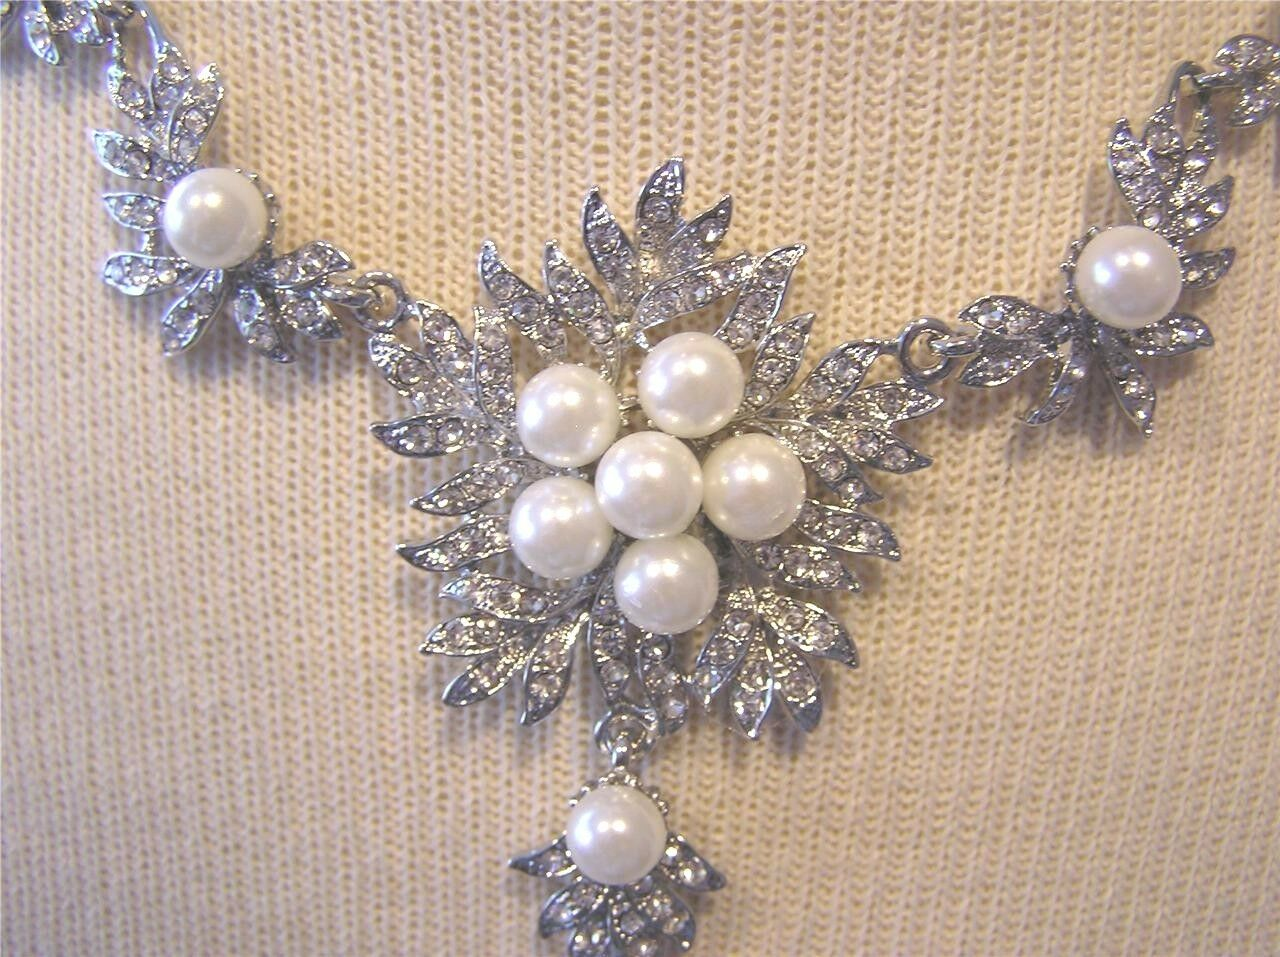 Wedding Bridal Necklace and earrings set Silver w/ faux pearls NEW in BOX